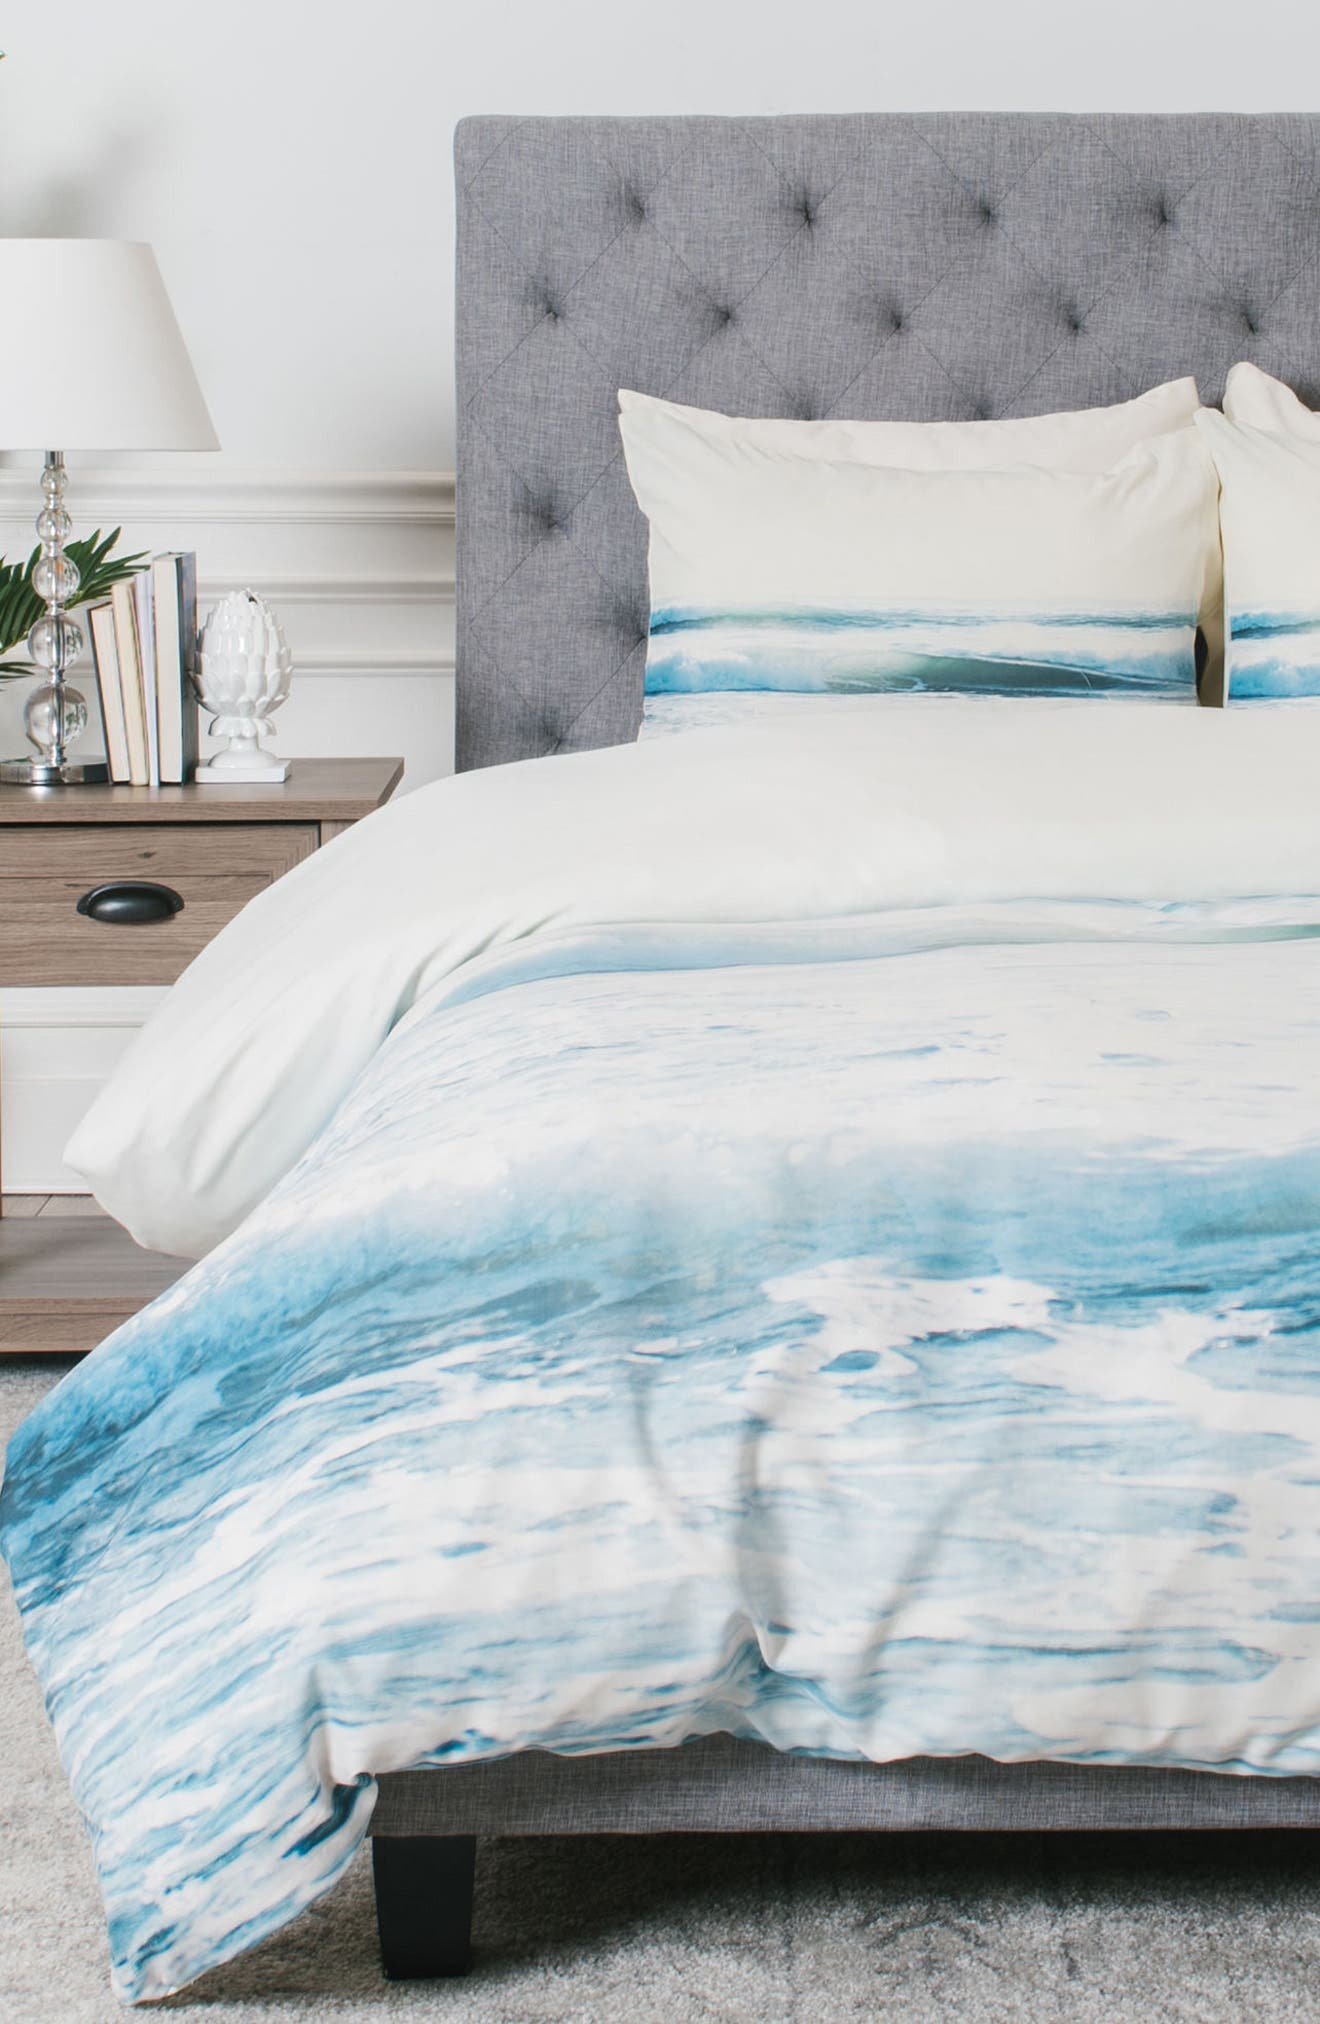 Main Image - DENY Designs Ride Waves Duvet Cover & Sham Set